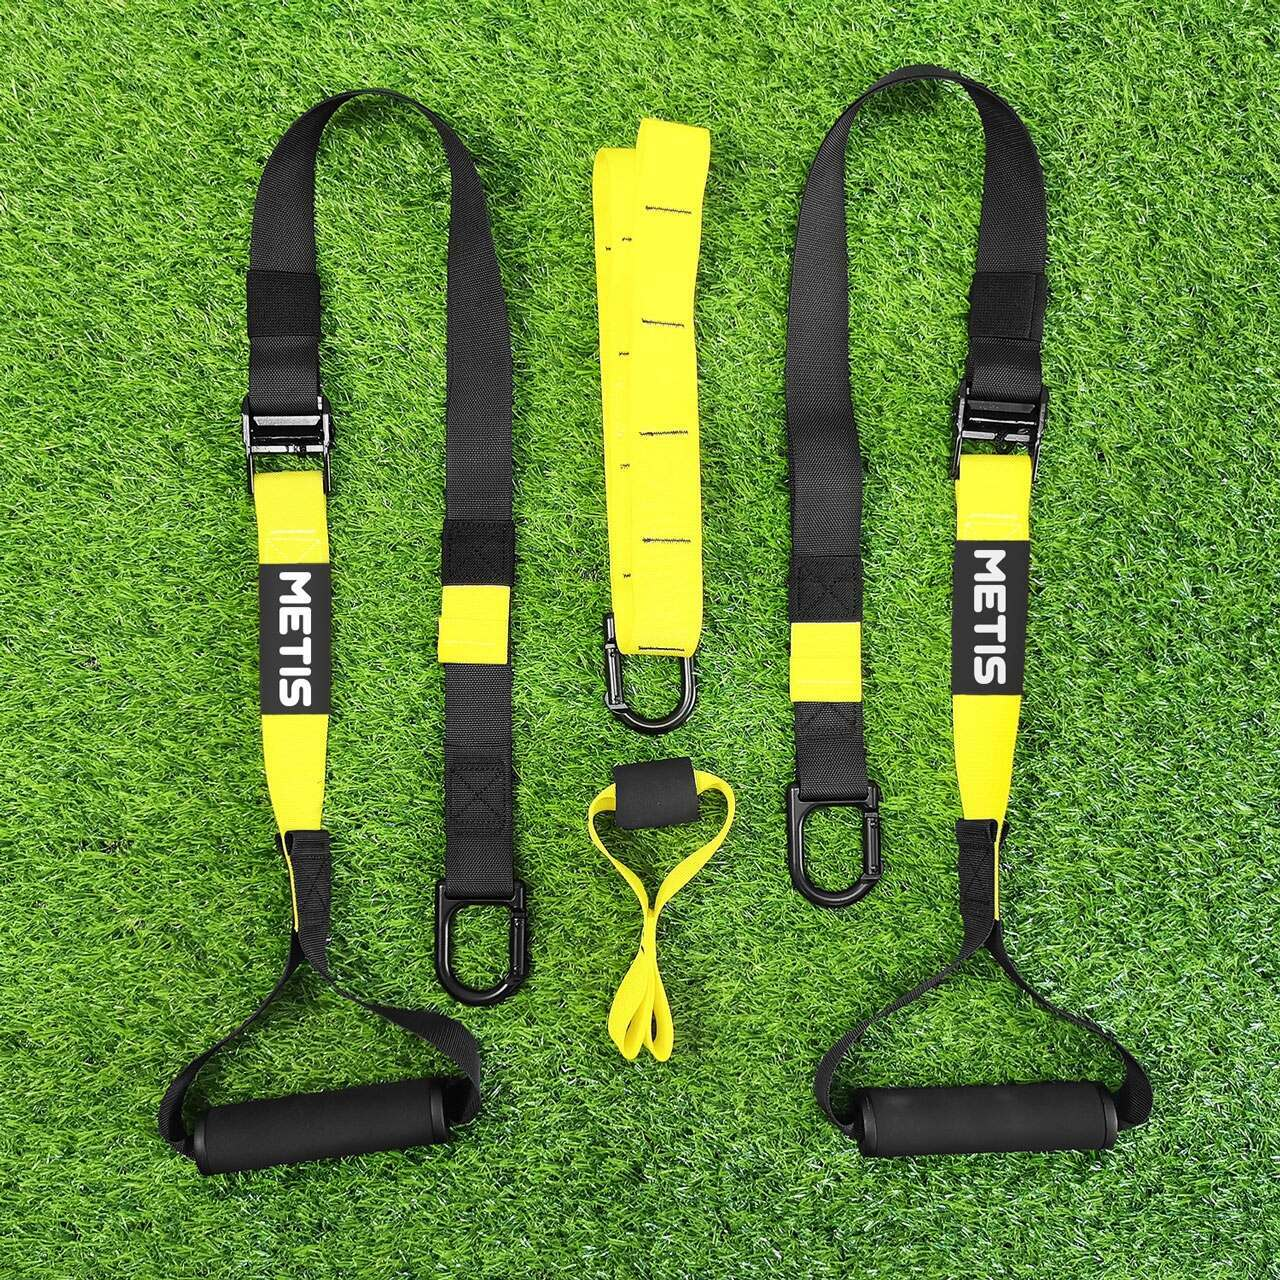 Metis Suspension Training Straps